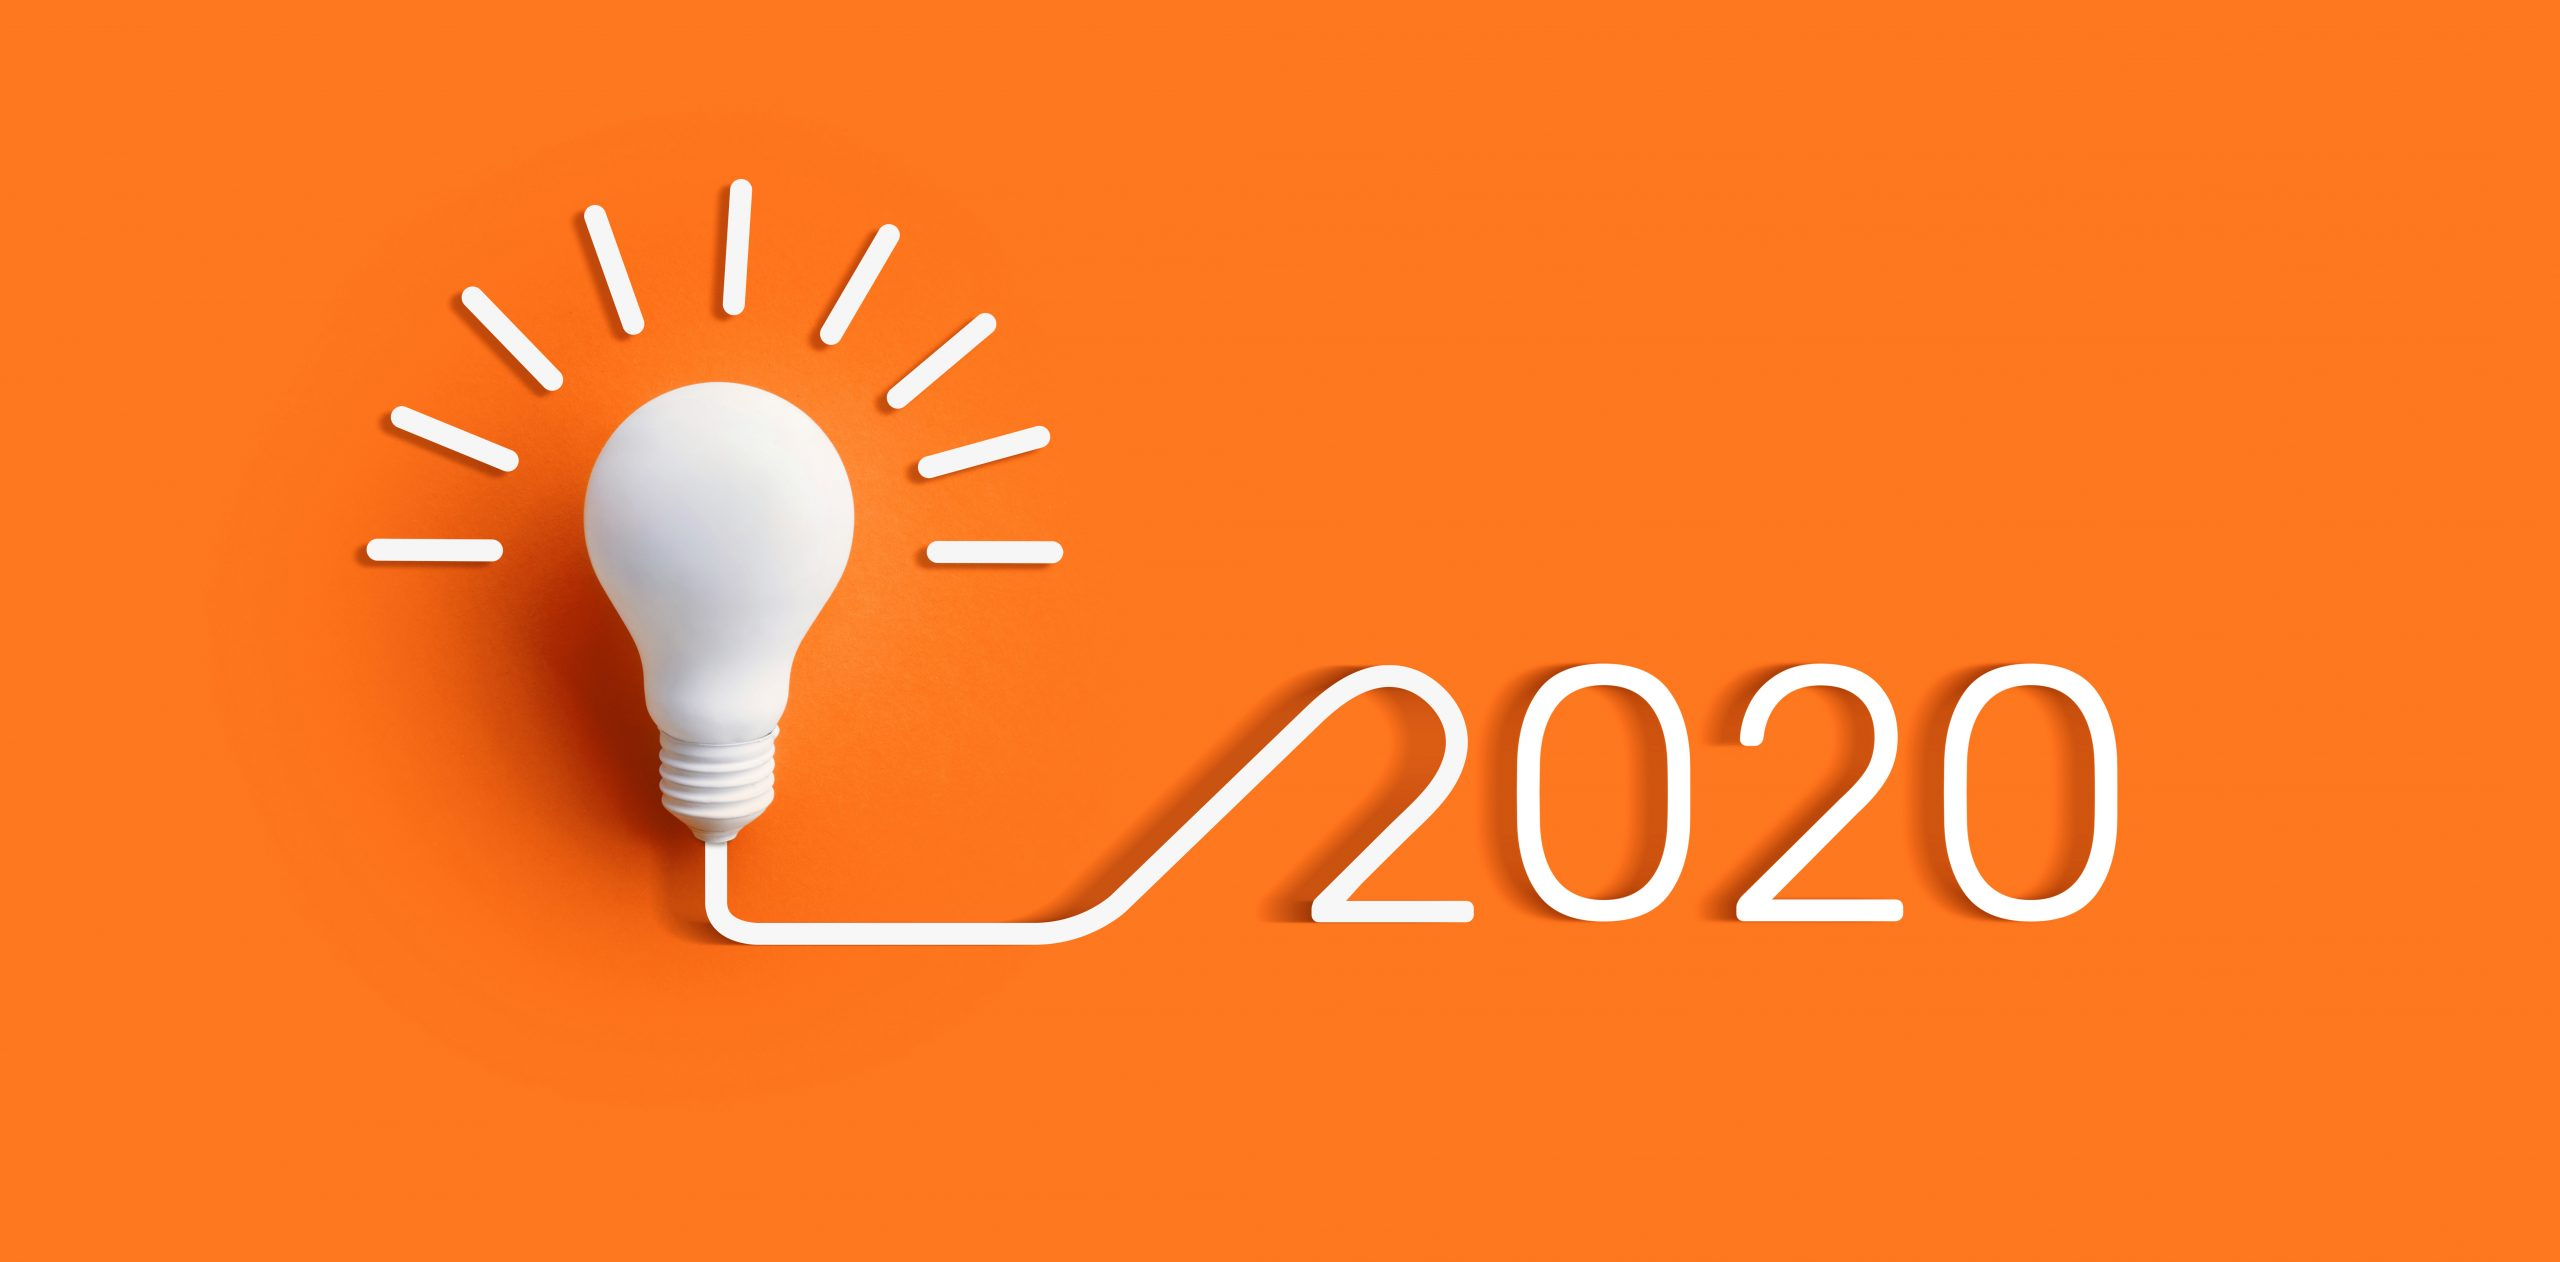 2020 creativity inspiration concepts with lightbulb on color background.